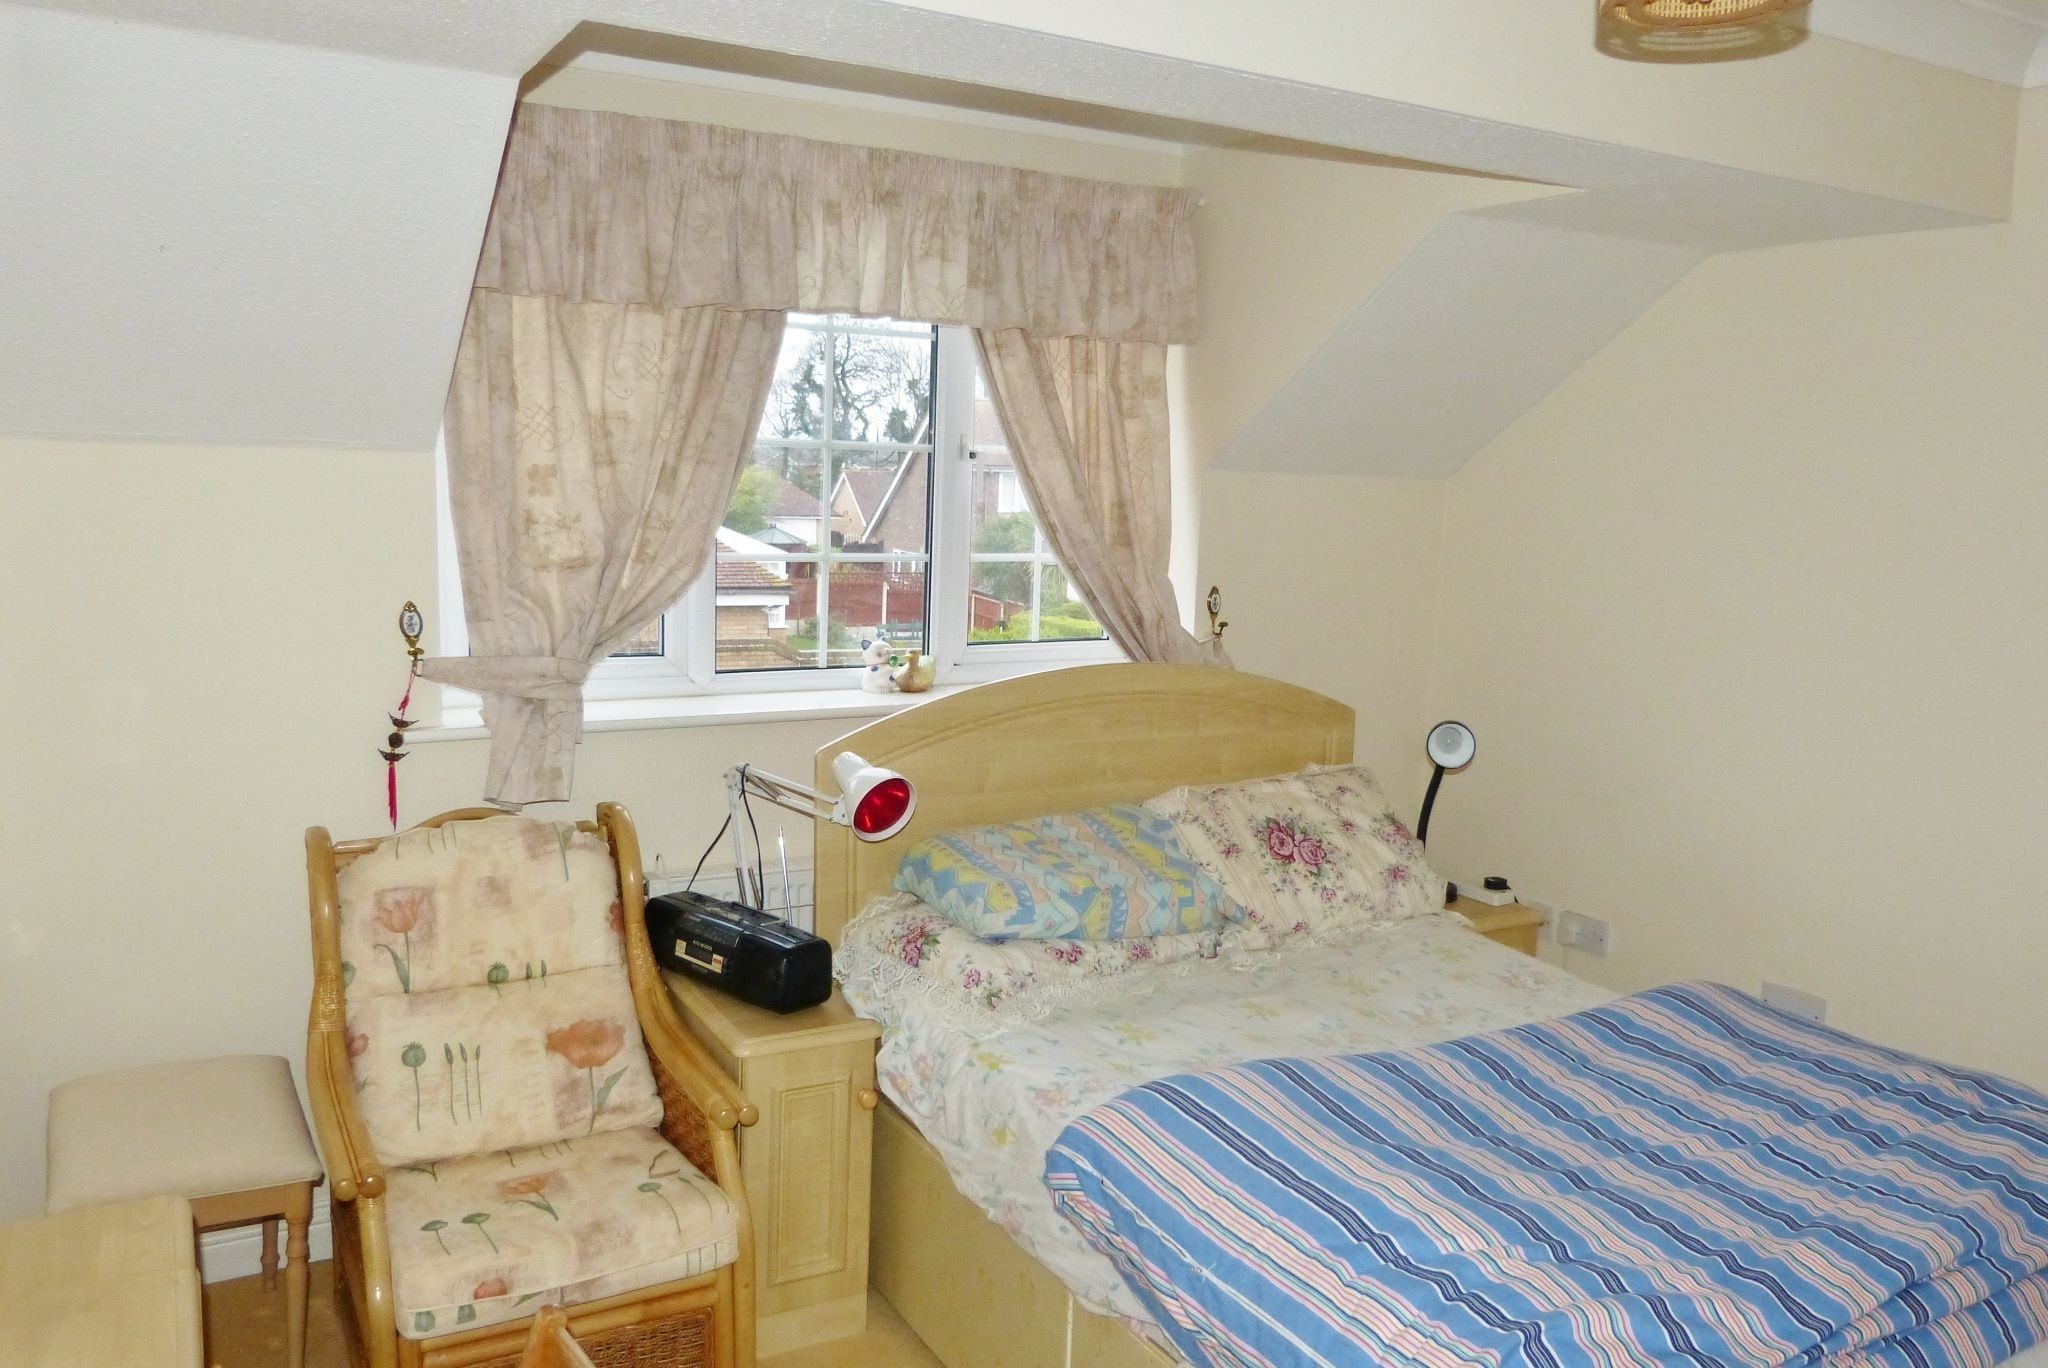 4 bedroom detached house For Sale in Abergele - Photograph 14